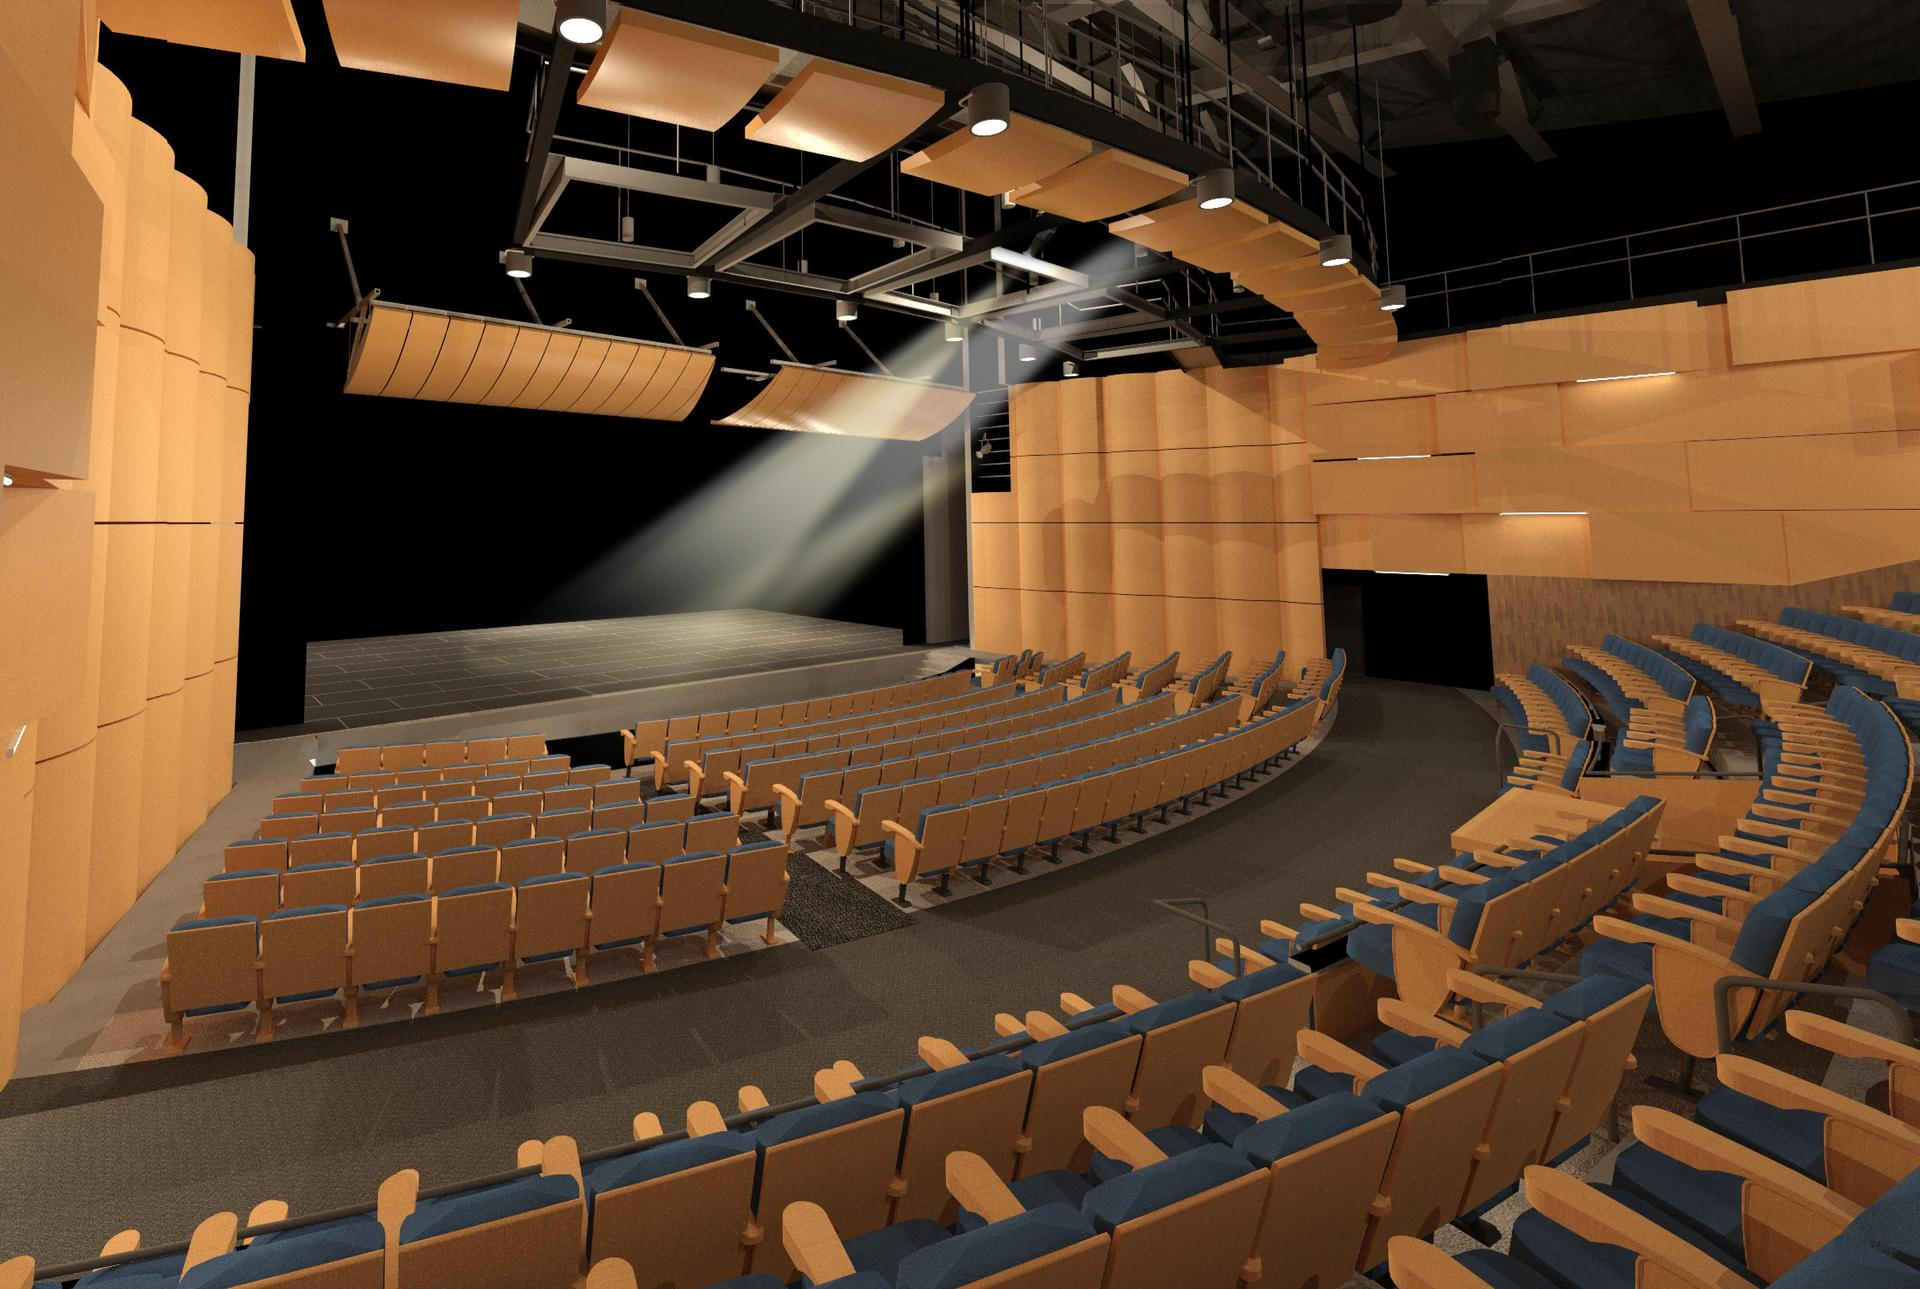 Interior view of the planned Performing Arts Center at Moreno Valley High School.